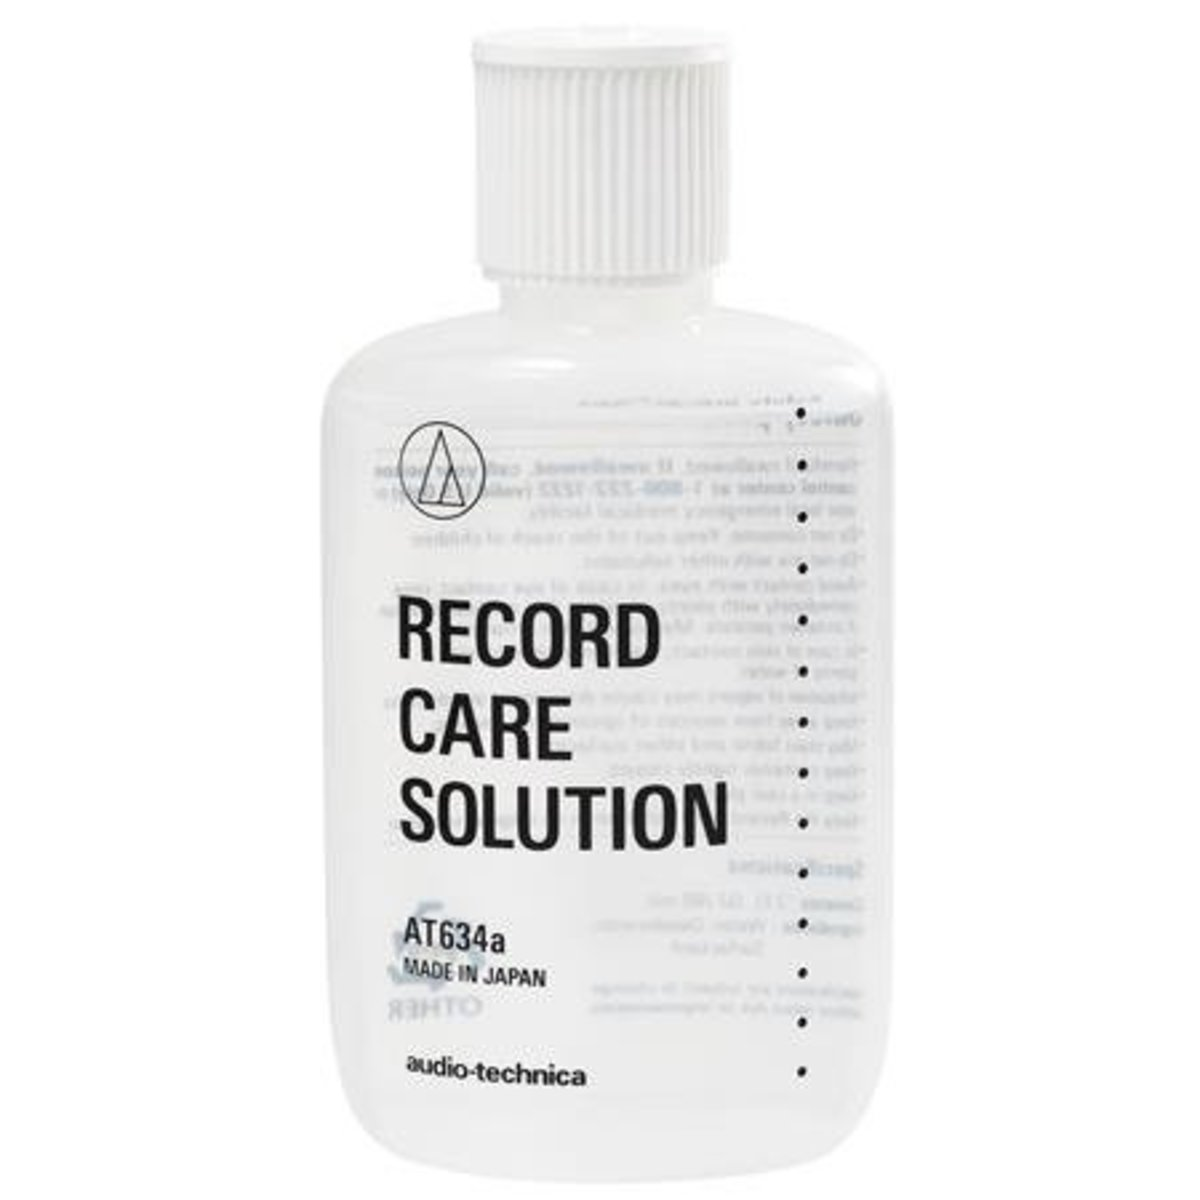 Record cleaning solution keeps your records in good shape and gets the tougher pieces of dirt and dust off of the record.